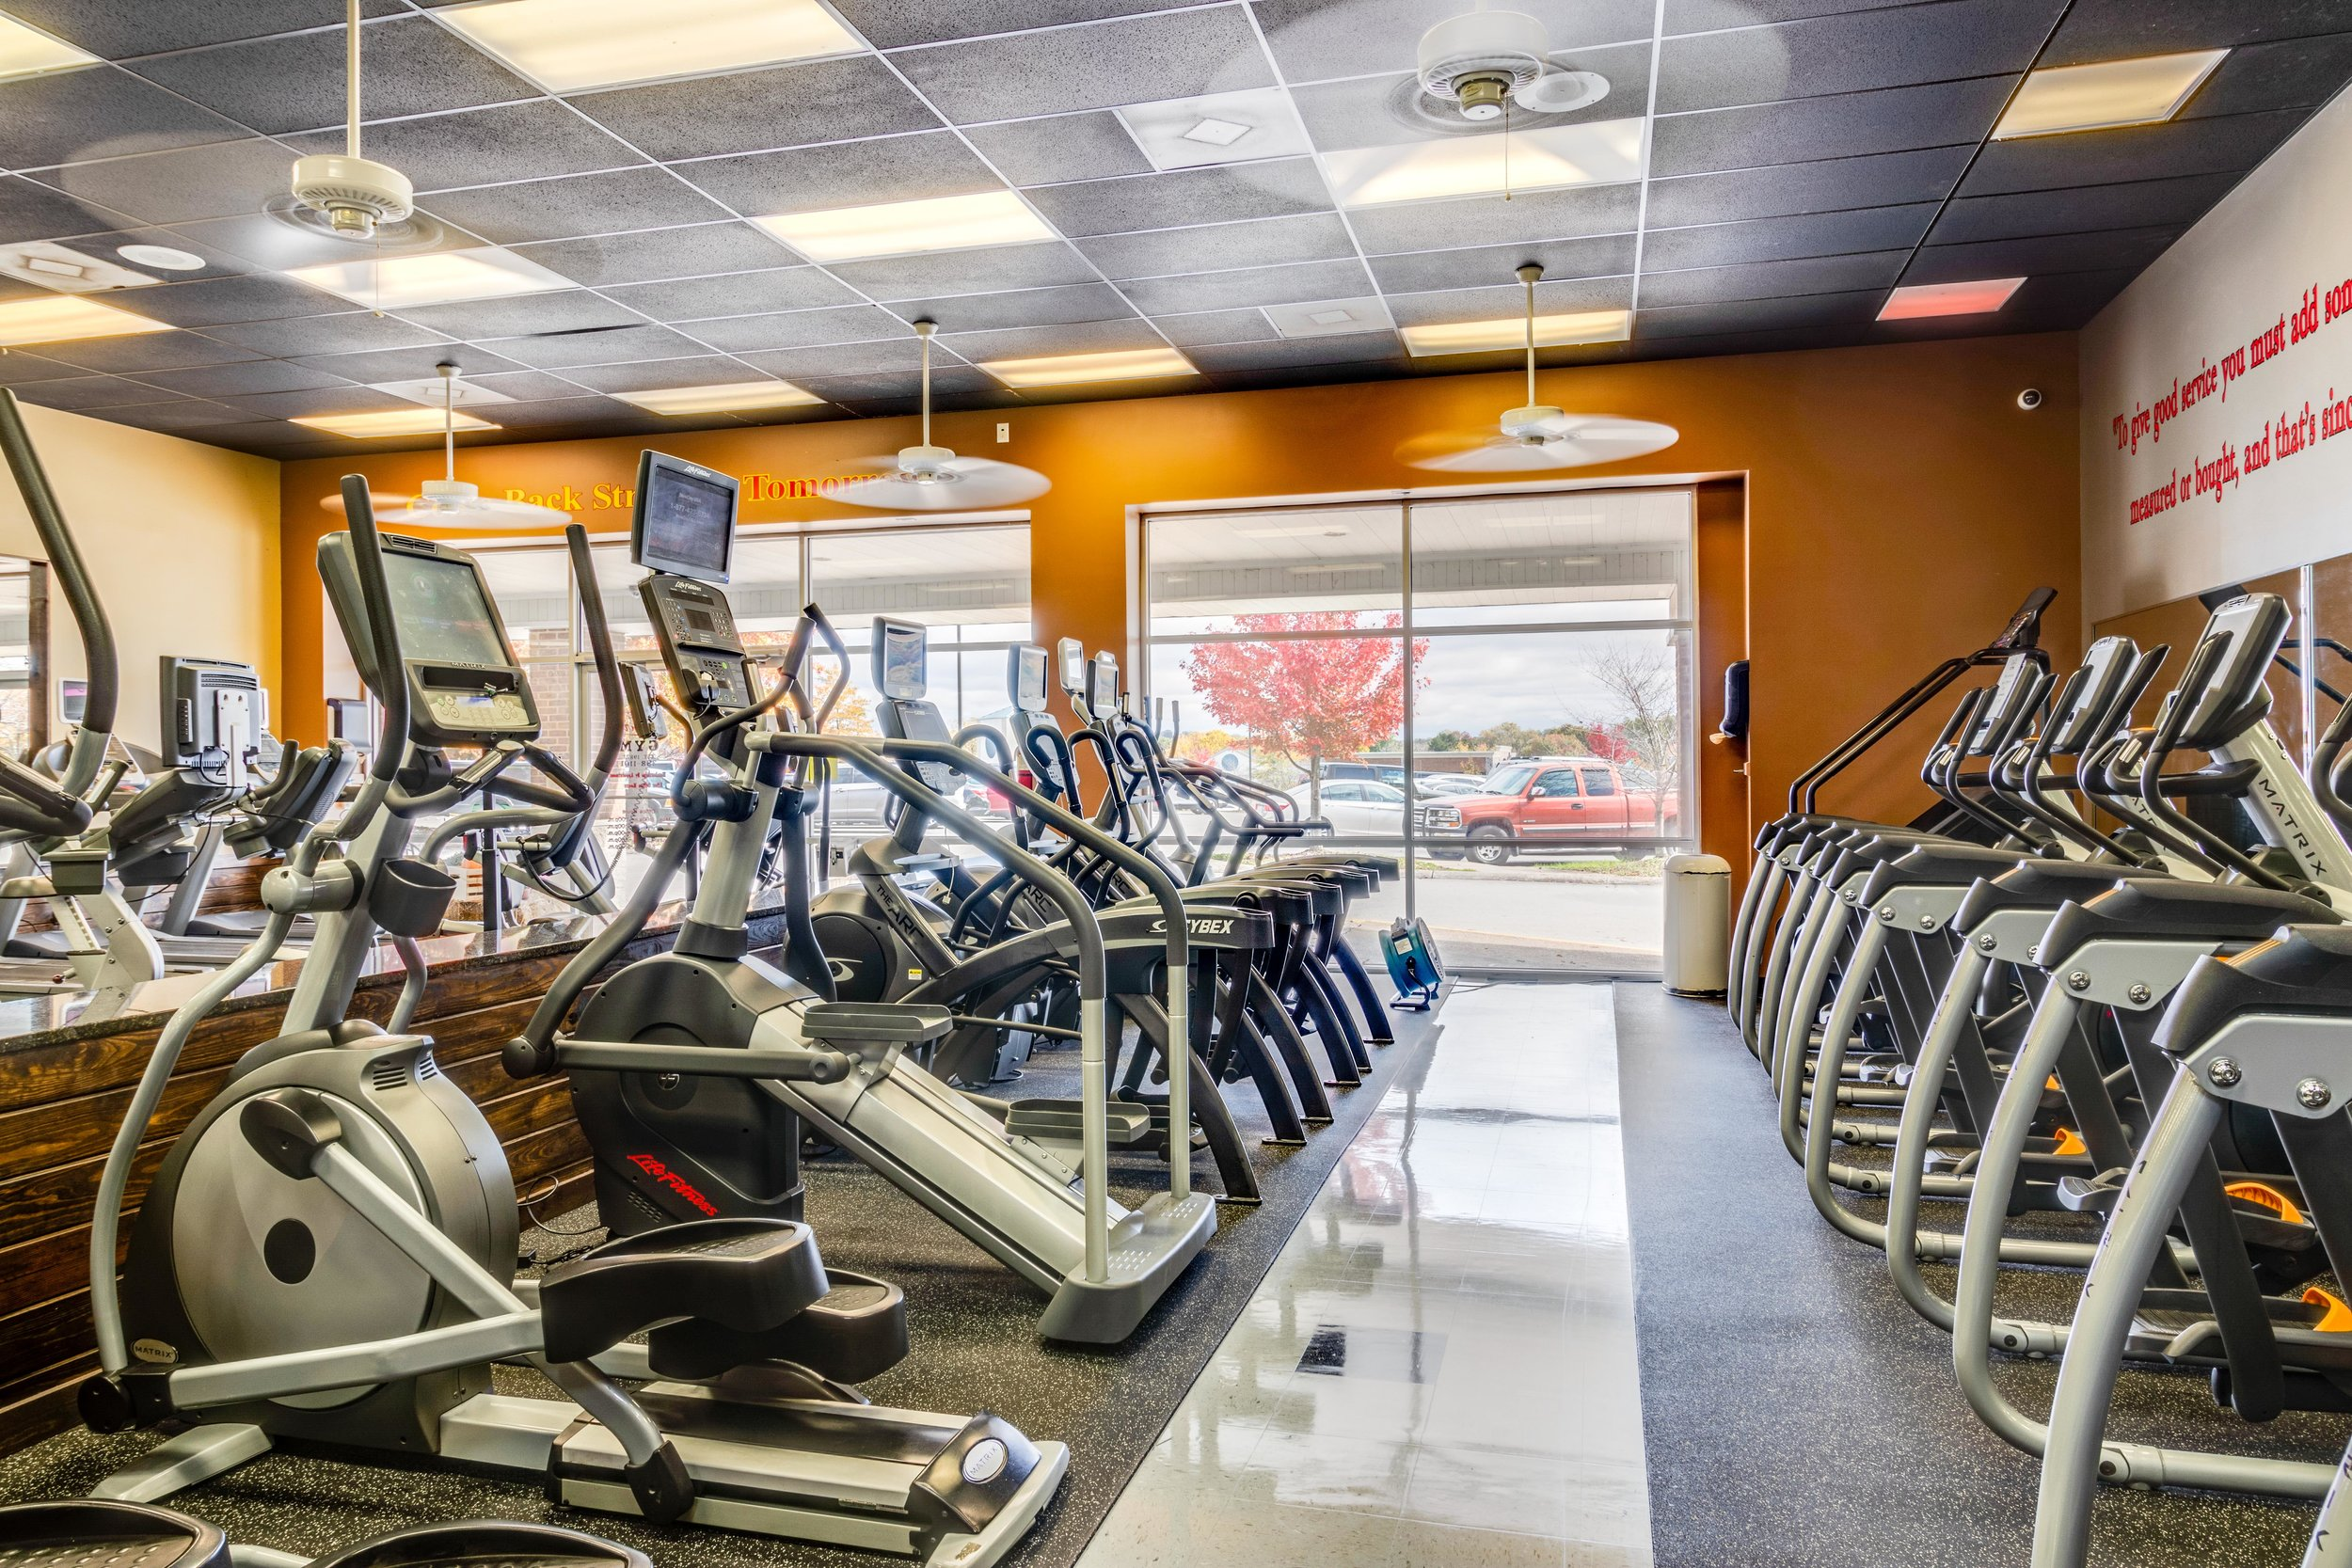 Harvey's Gym Columbia Tennessee kenneth purdom LORES (61 of 90).jpg